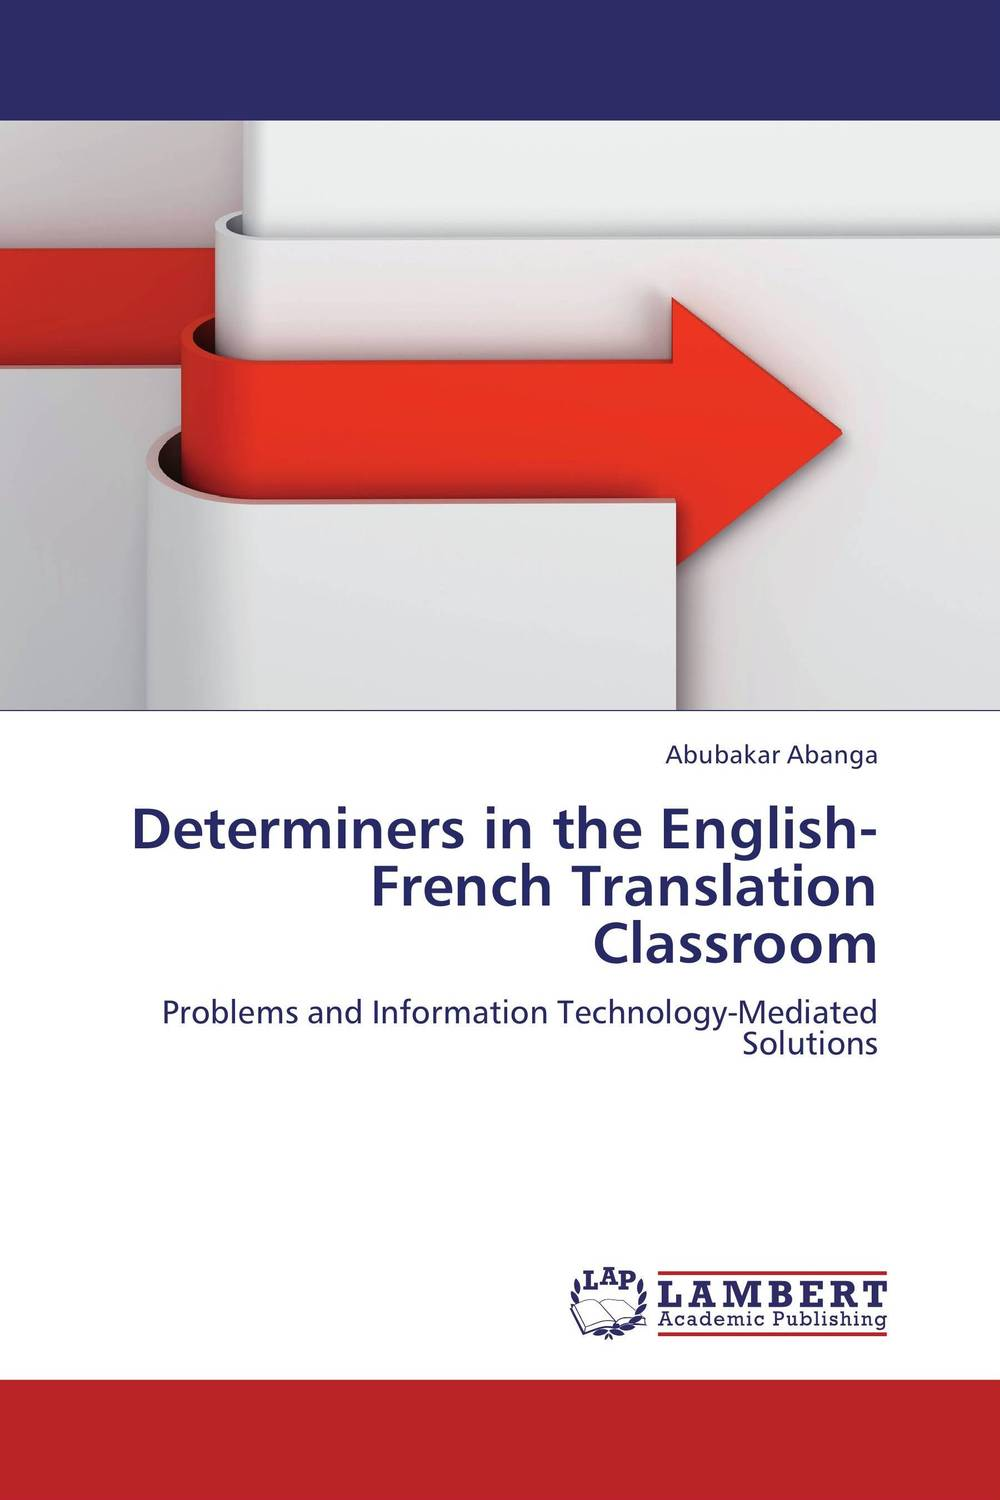 Determiners in the English-French Translation Classroom learning resources набор пробей